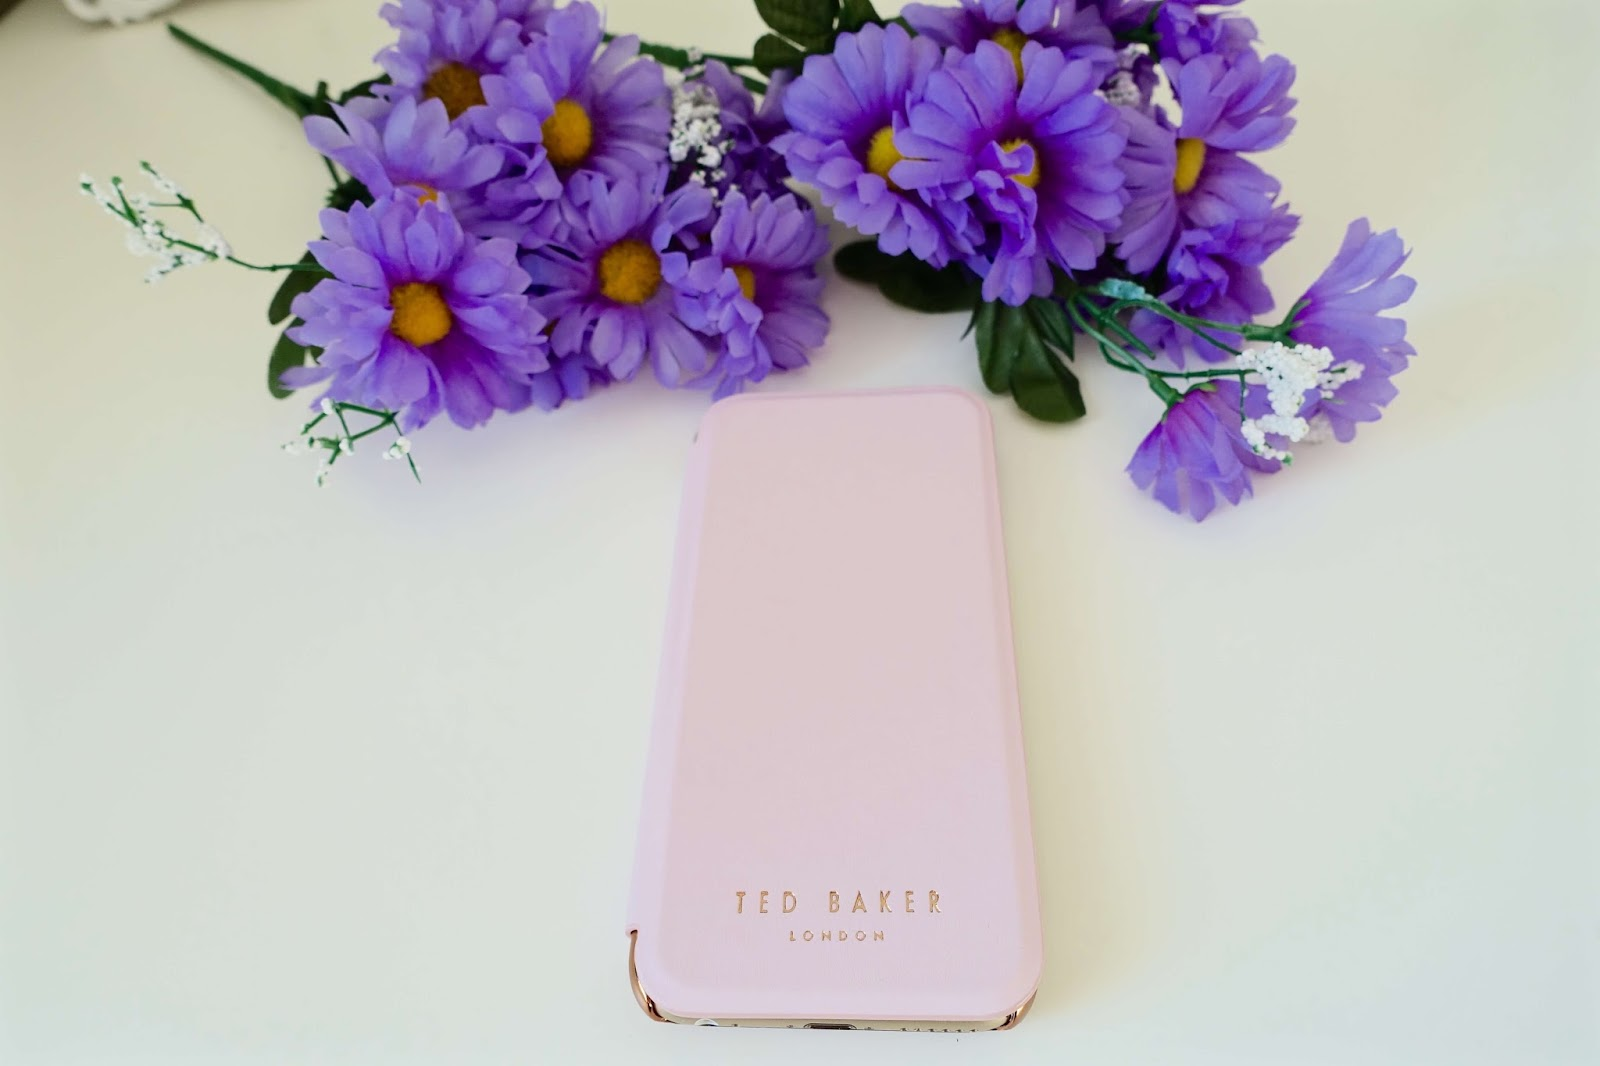 Ted baker phone case accessories